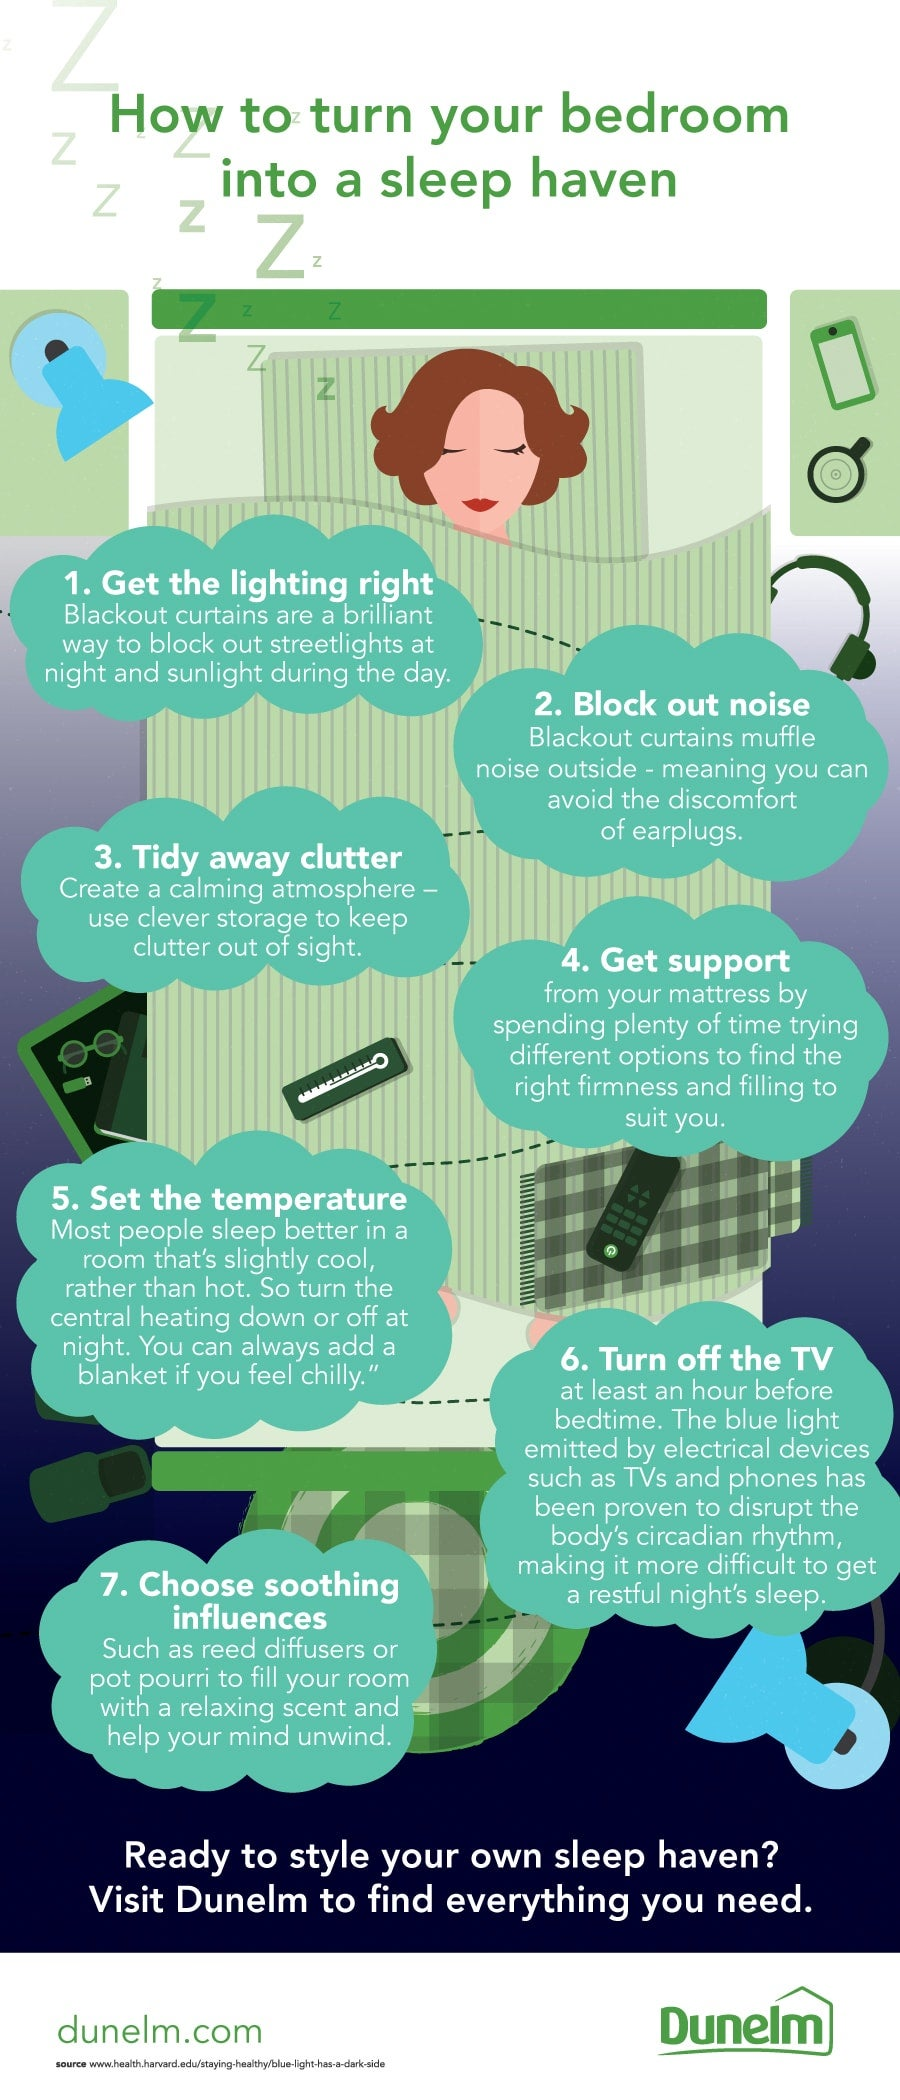 How to turn your bedroom into a sleep haven